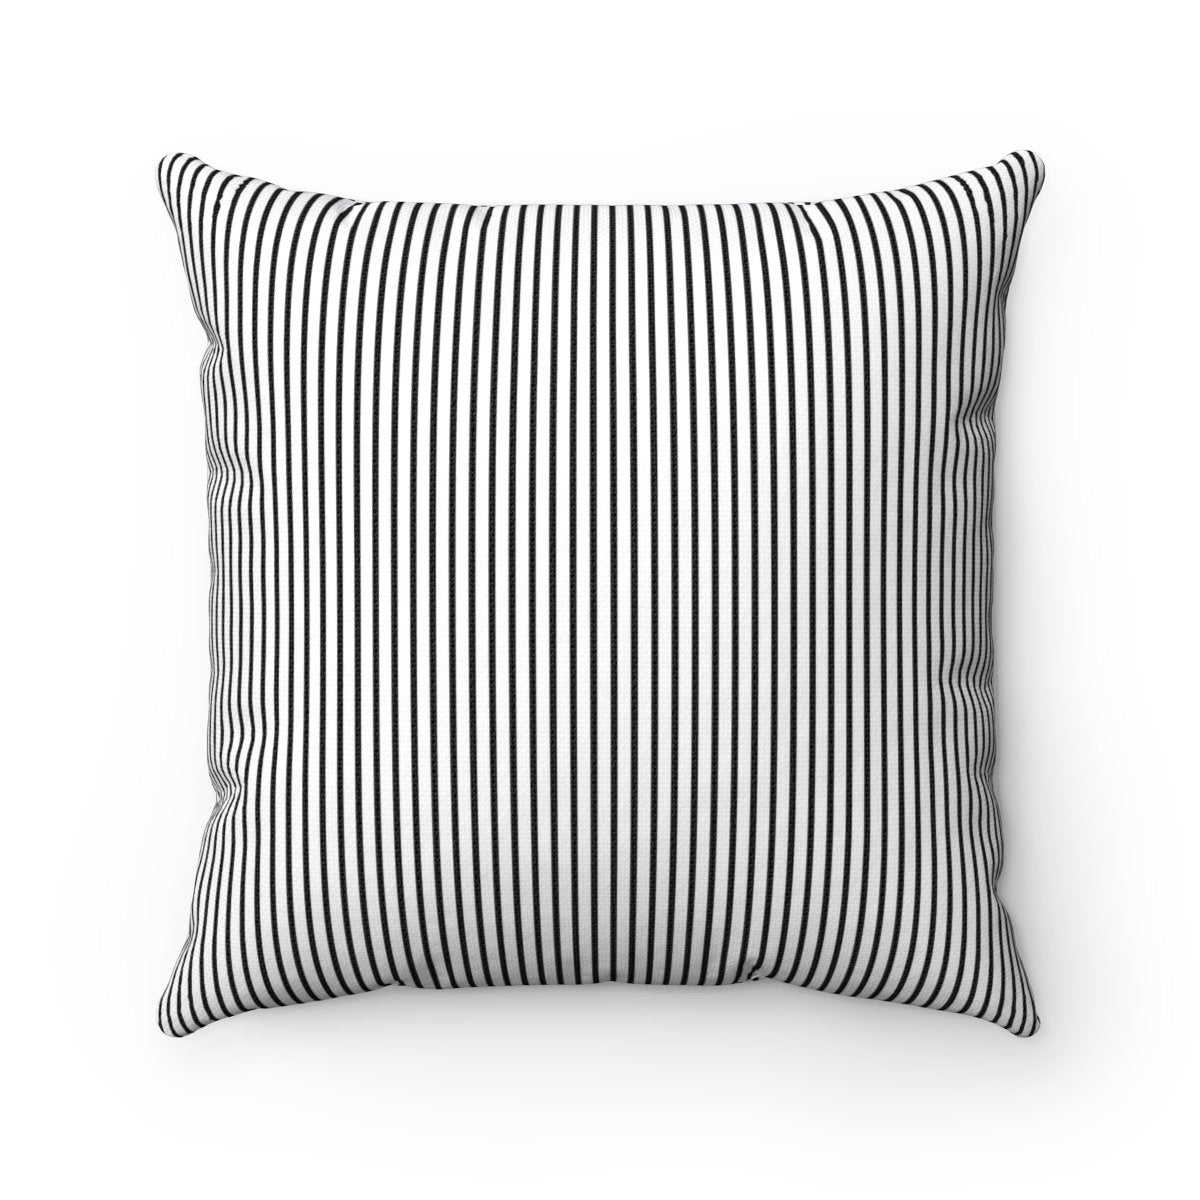 Black and white striped contemporary decorative cushion cover-Home Decor - Decorative Accents - Pillows & Throws - Decorative Pillows-Maison d'Elite-14x14-Très Elite